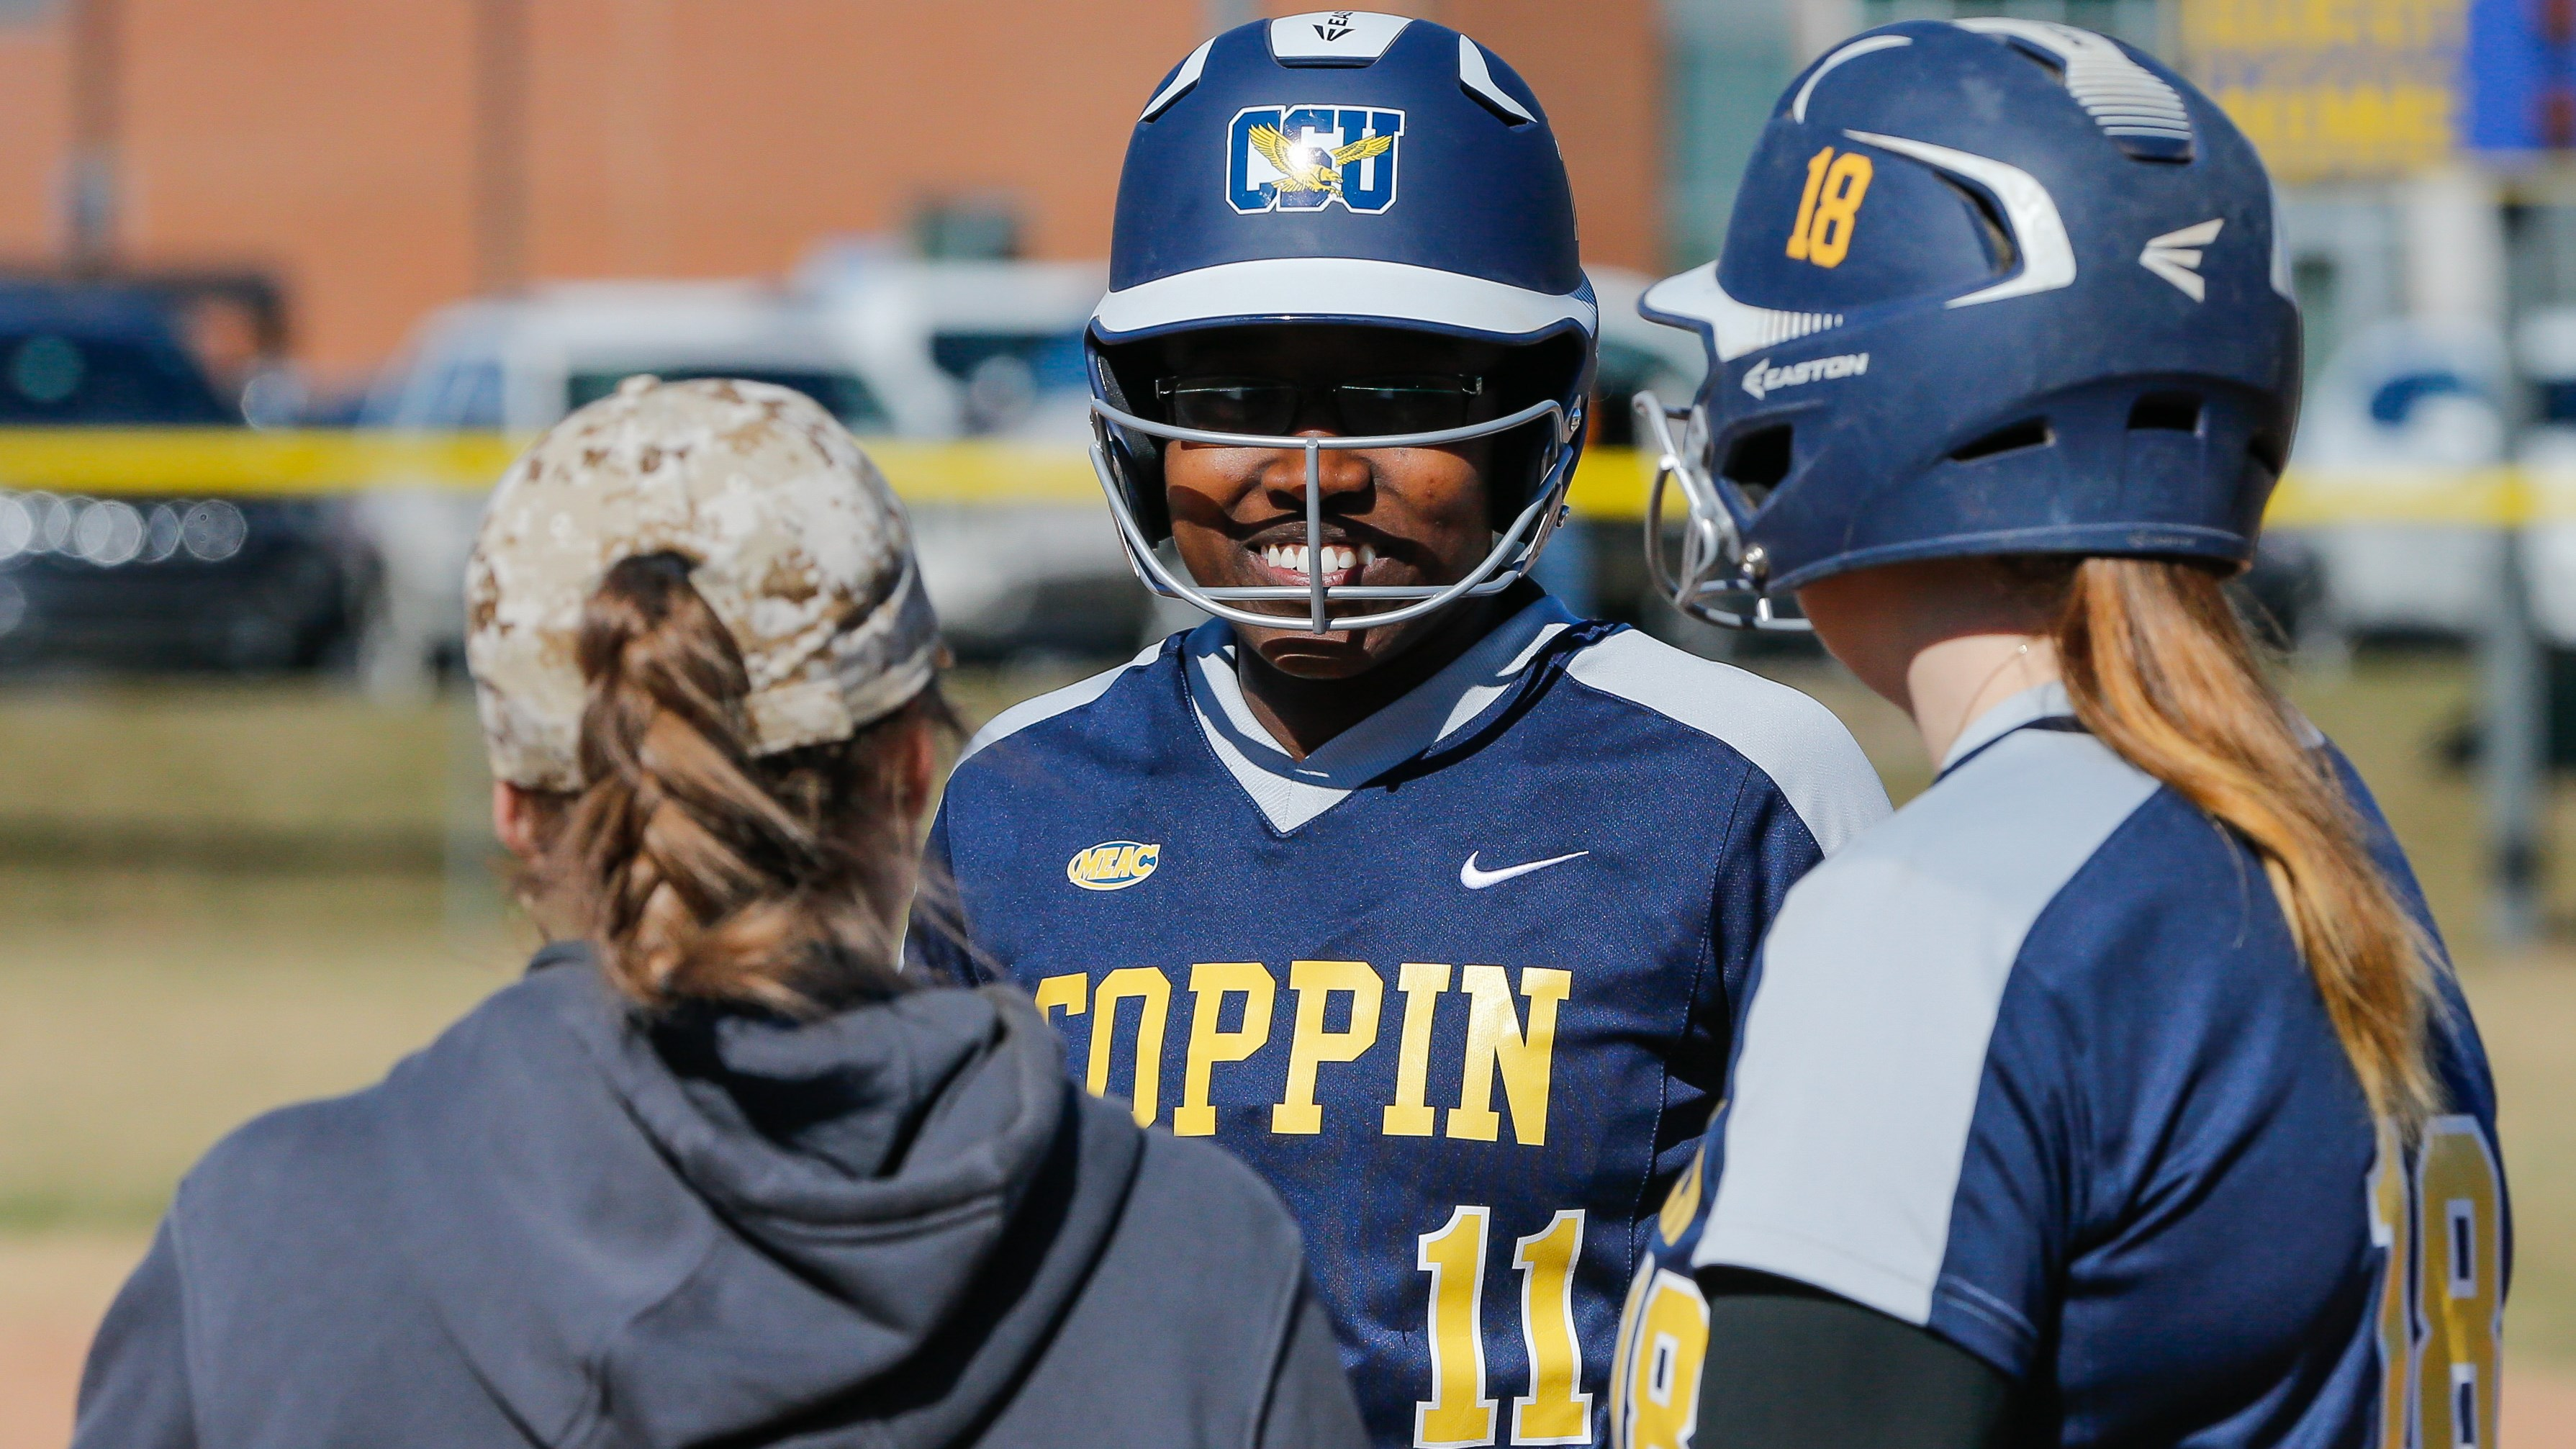 Nia Bowe chats with coach and teammate at 1st base